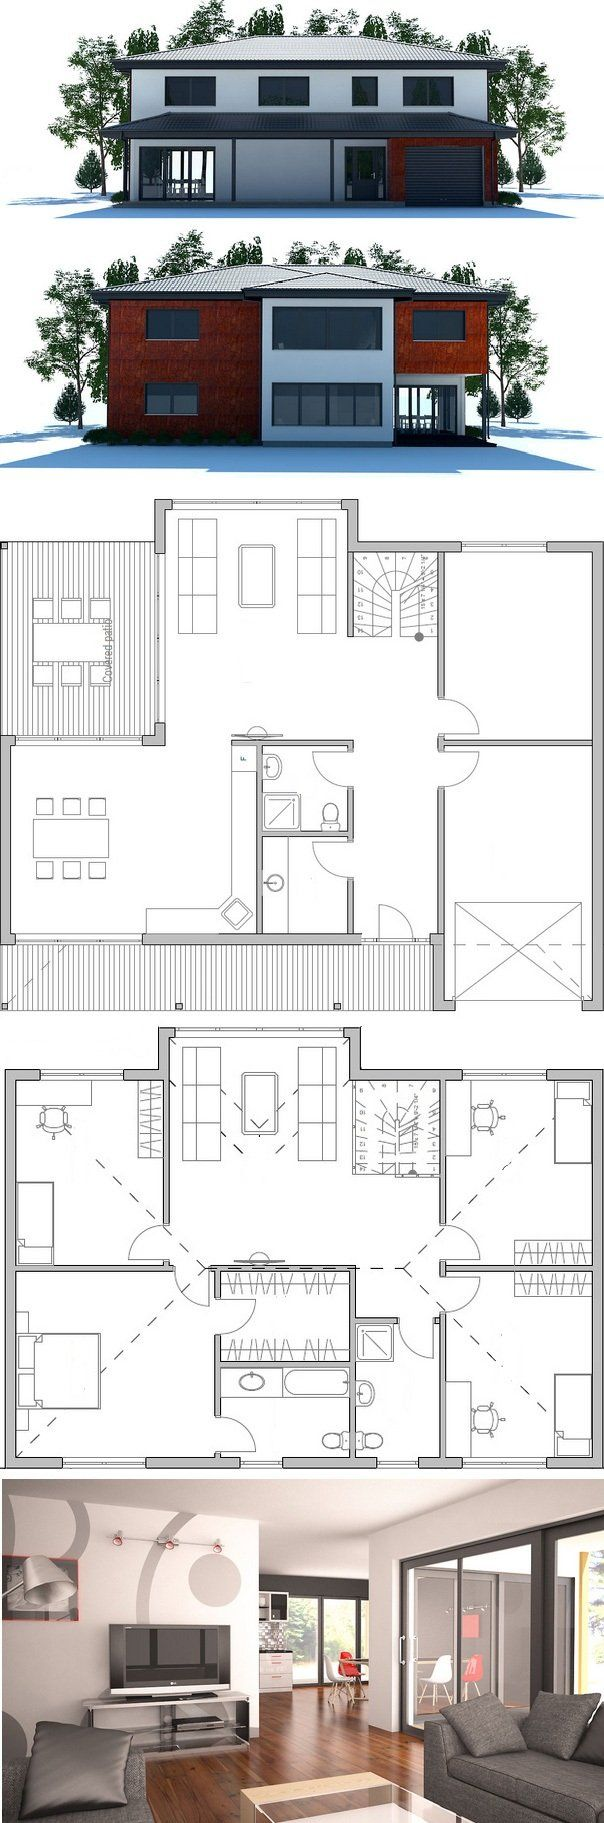 Modern House Plan from ConceptHomecom 366 best